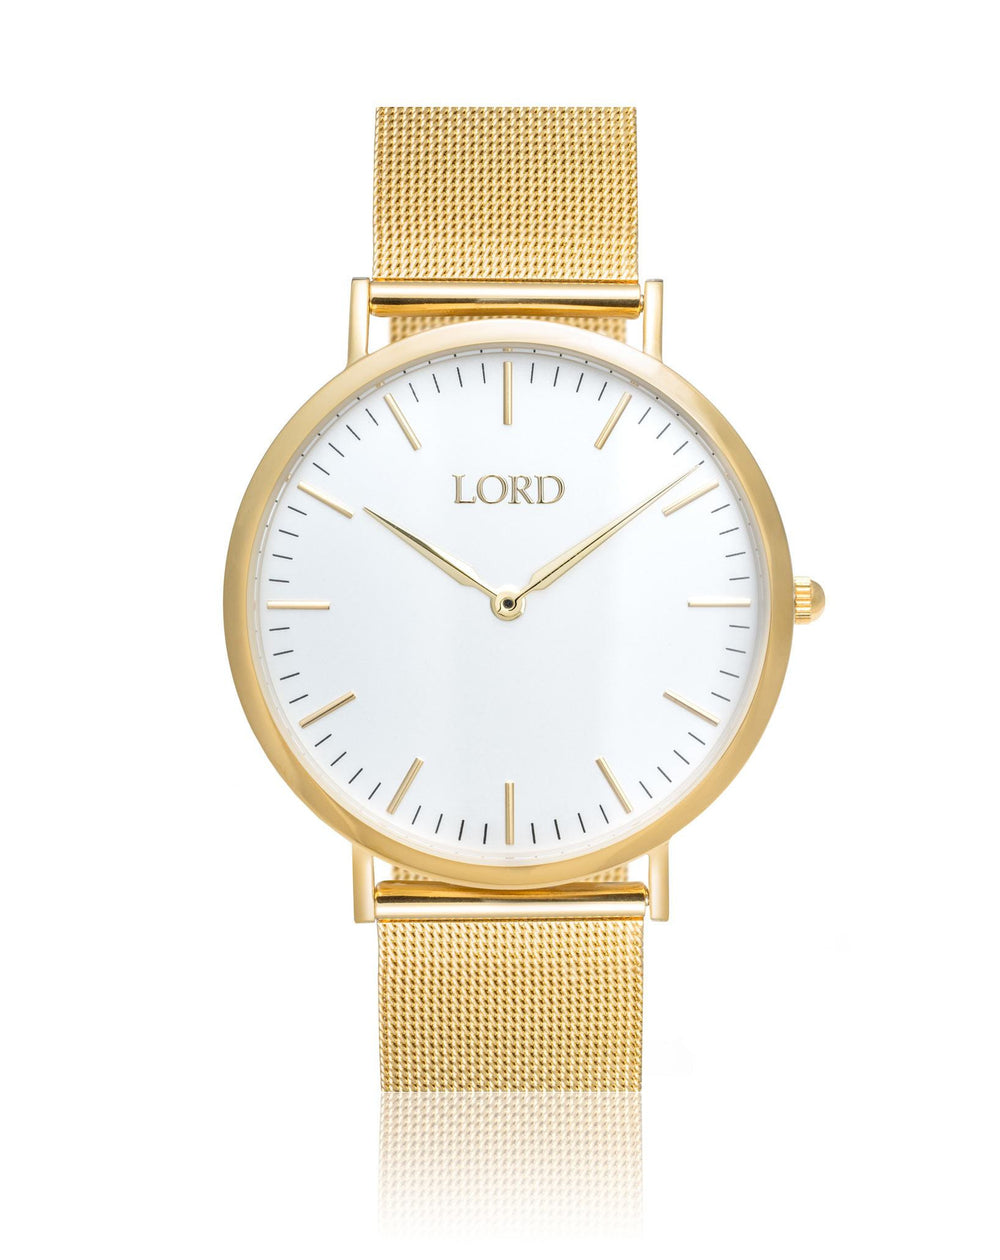 Classic gold watch classic men 39 s watches lord timepieces for Lord timepieces